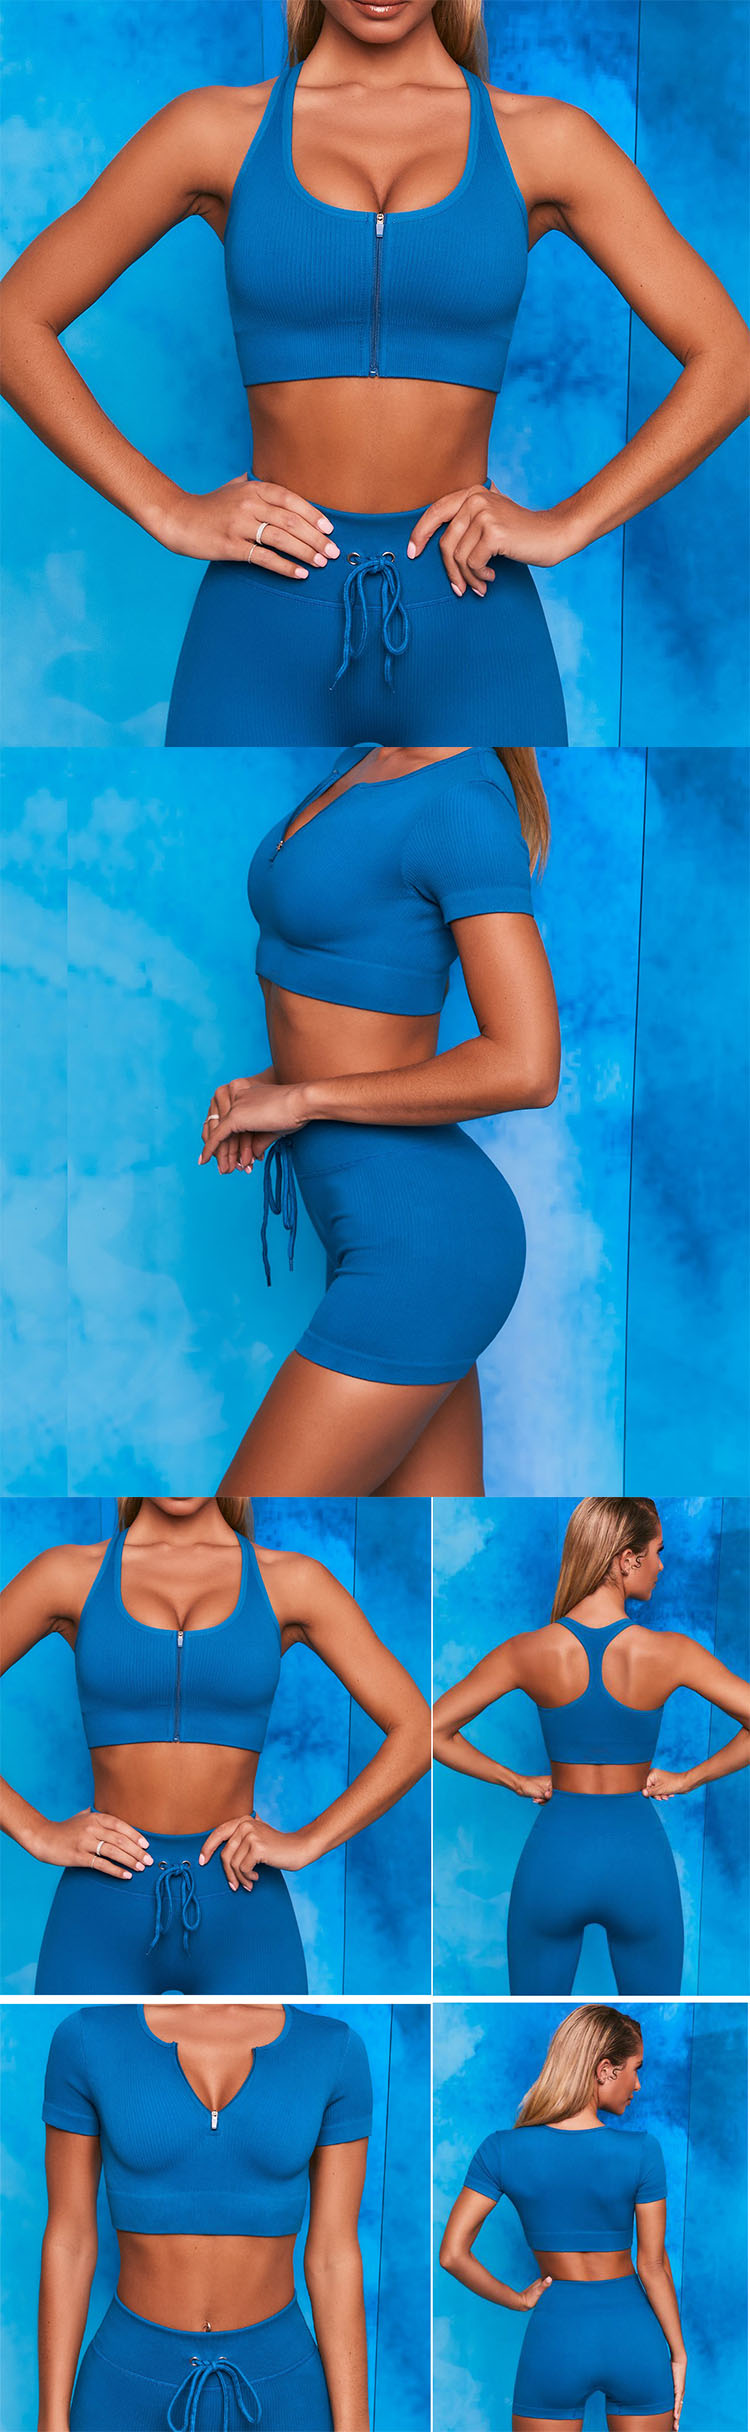 The drawstring in the blue sports bra is designed to form folds